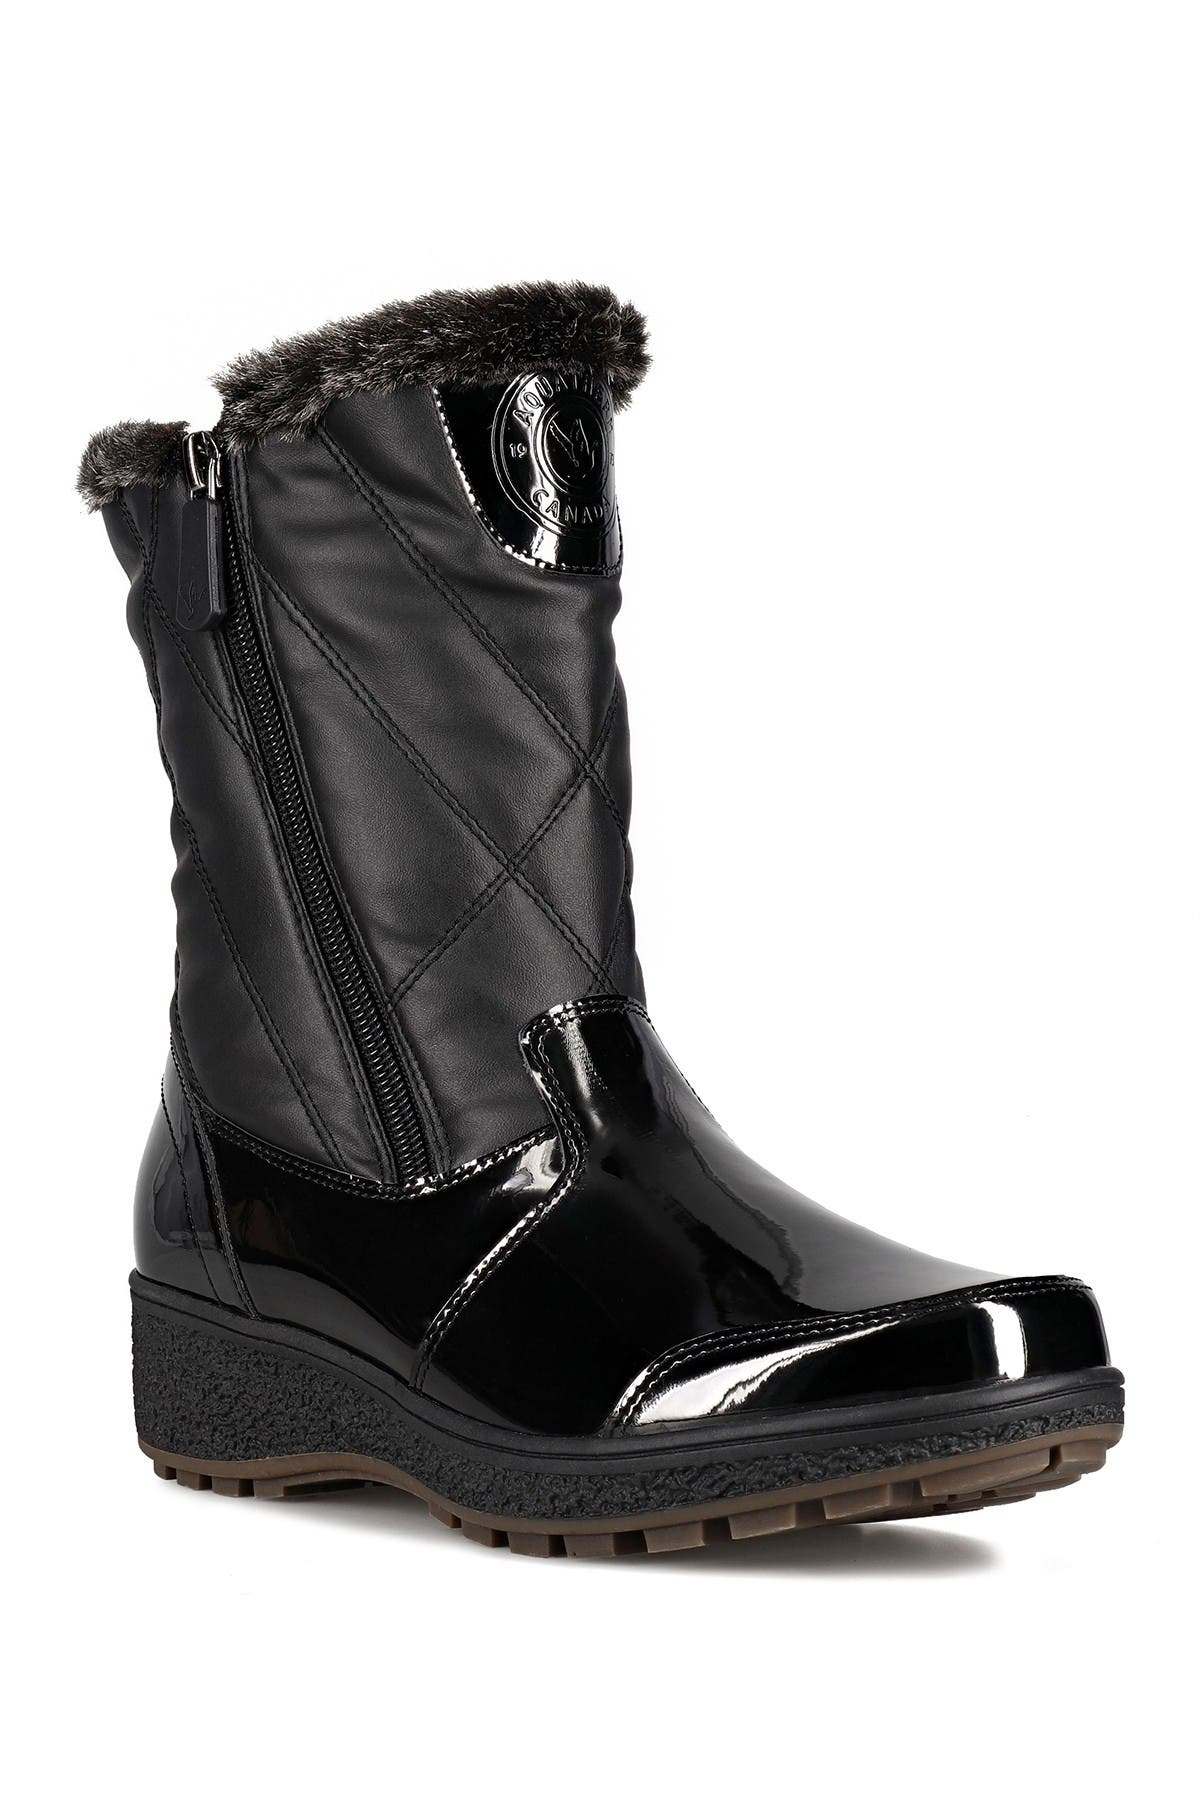 Image of Aquatherm by Santana Canada Tasha Faux Fur Lined Quilted Winter Boot